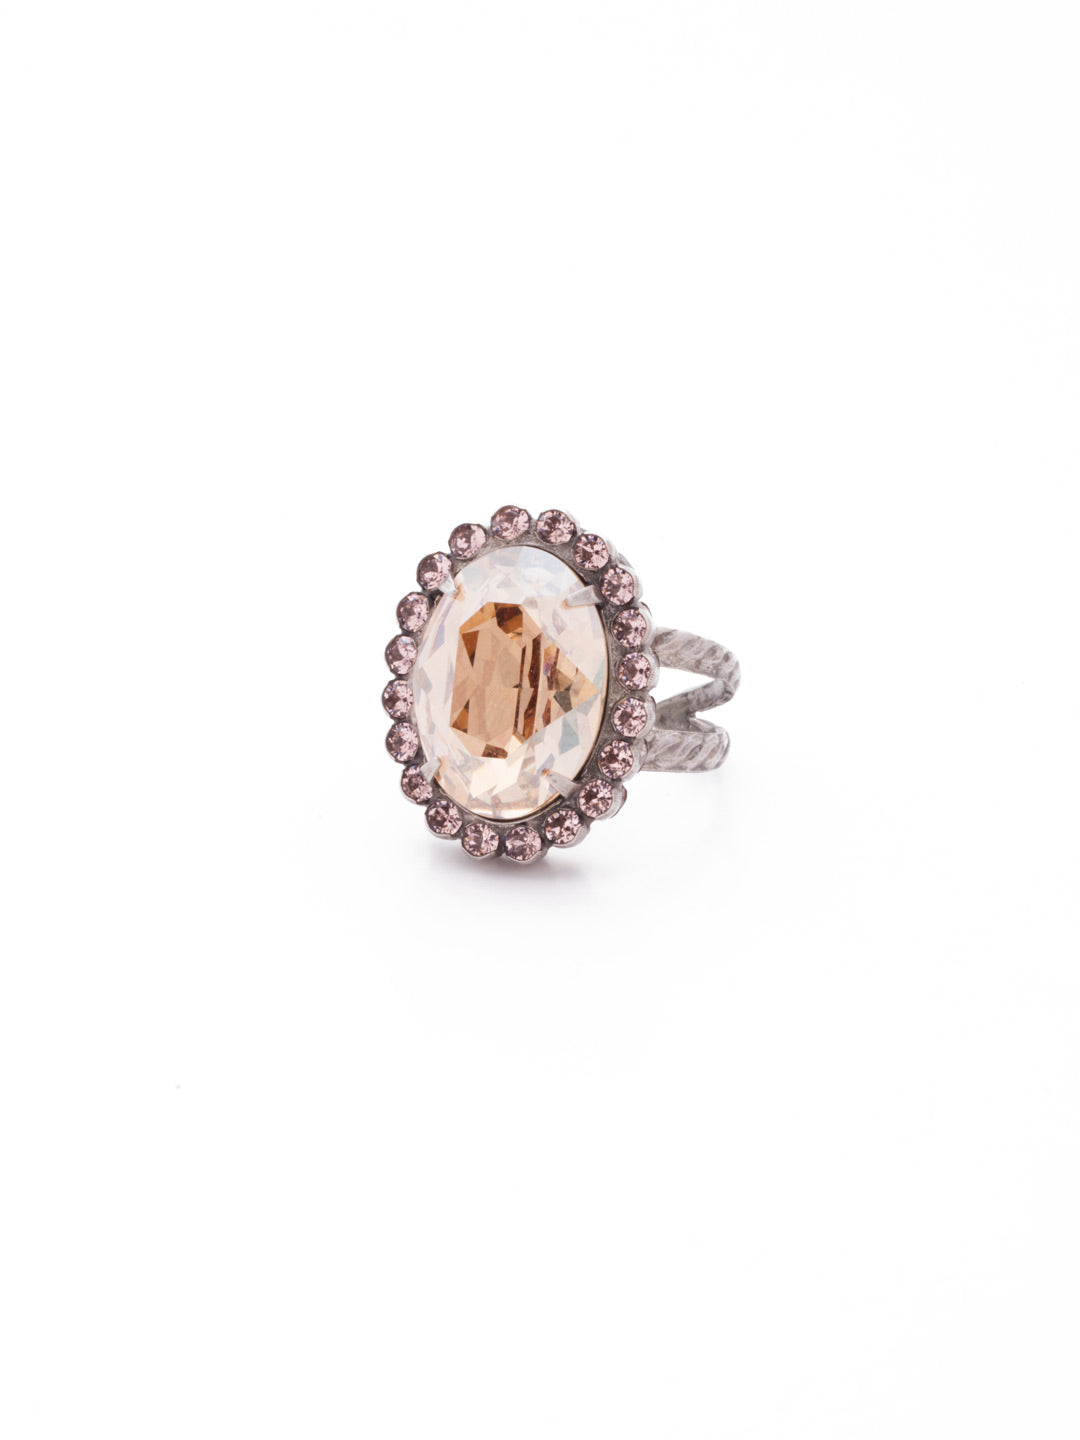 Glamorous Oval-Cut Cocktail Ring - RBT68ASSBL